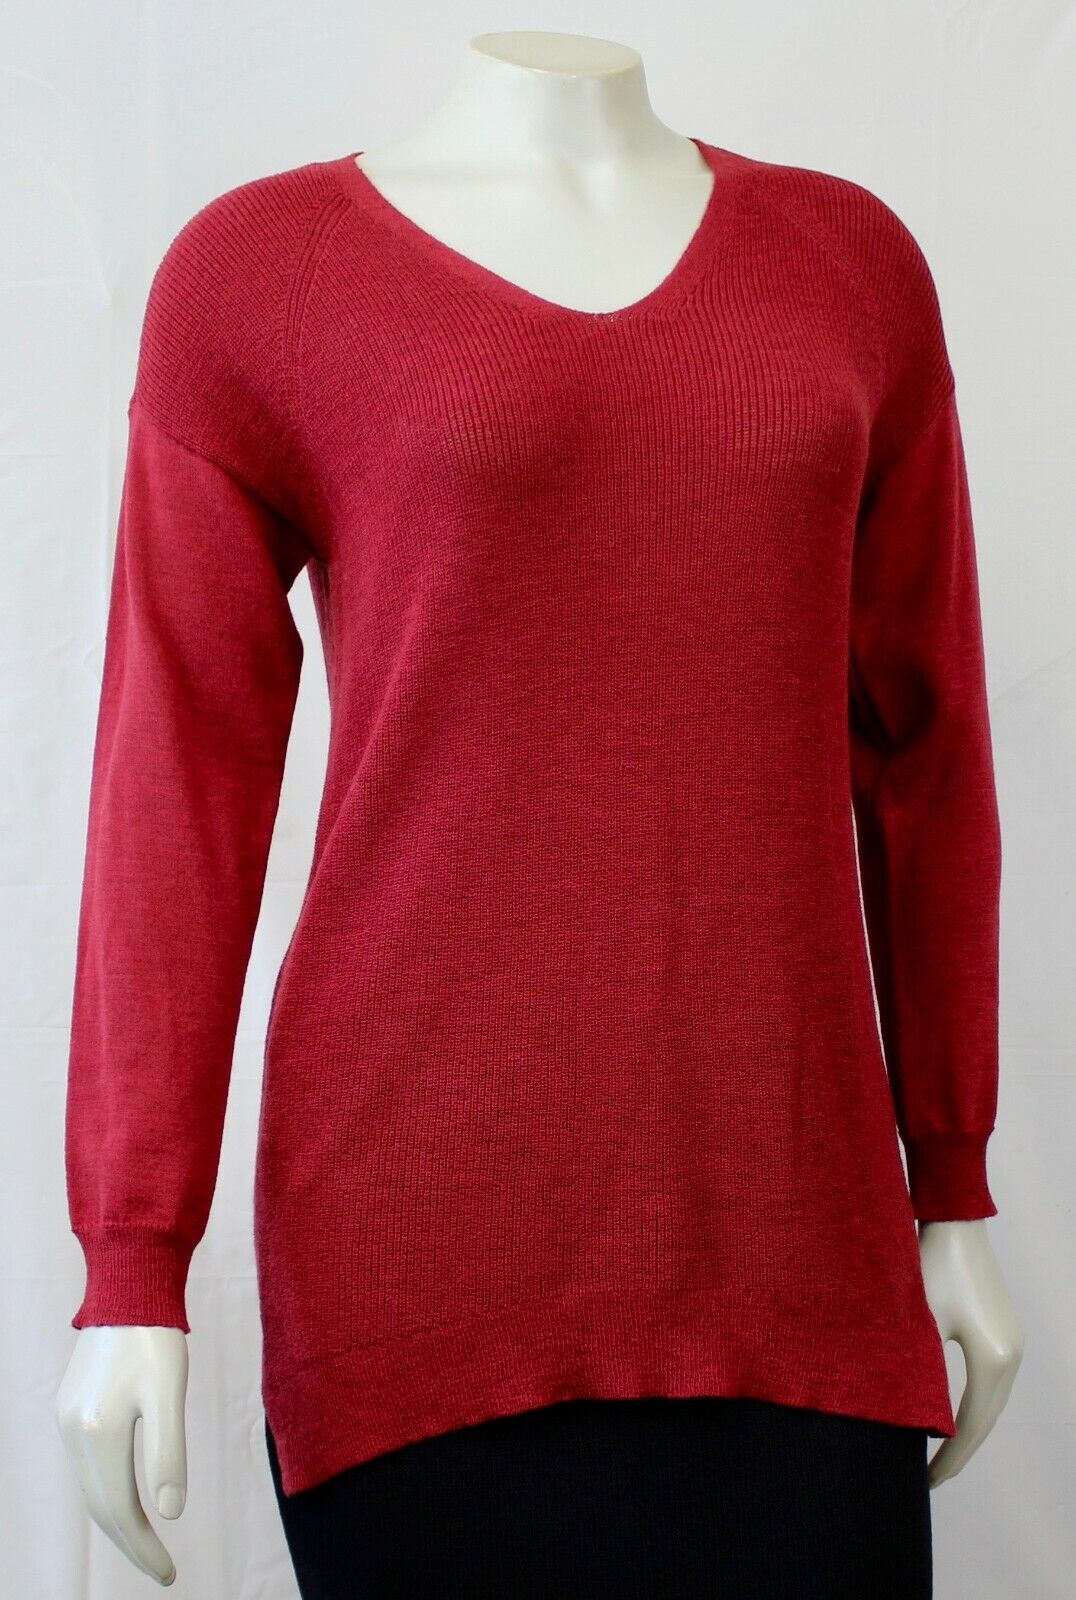 NEW Eileen Fisher Petite V-Neck Red Long Sleeve Waffle Knit Sweater